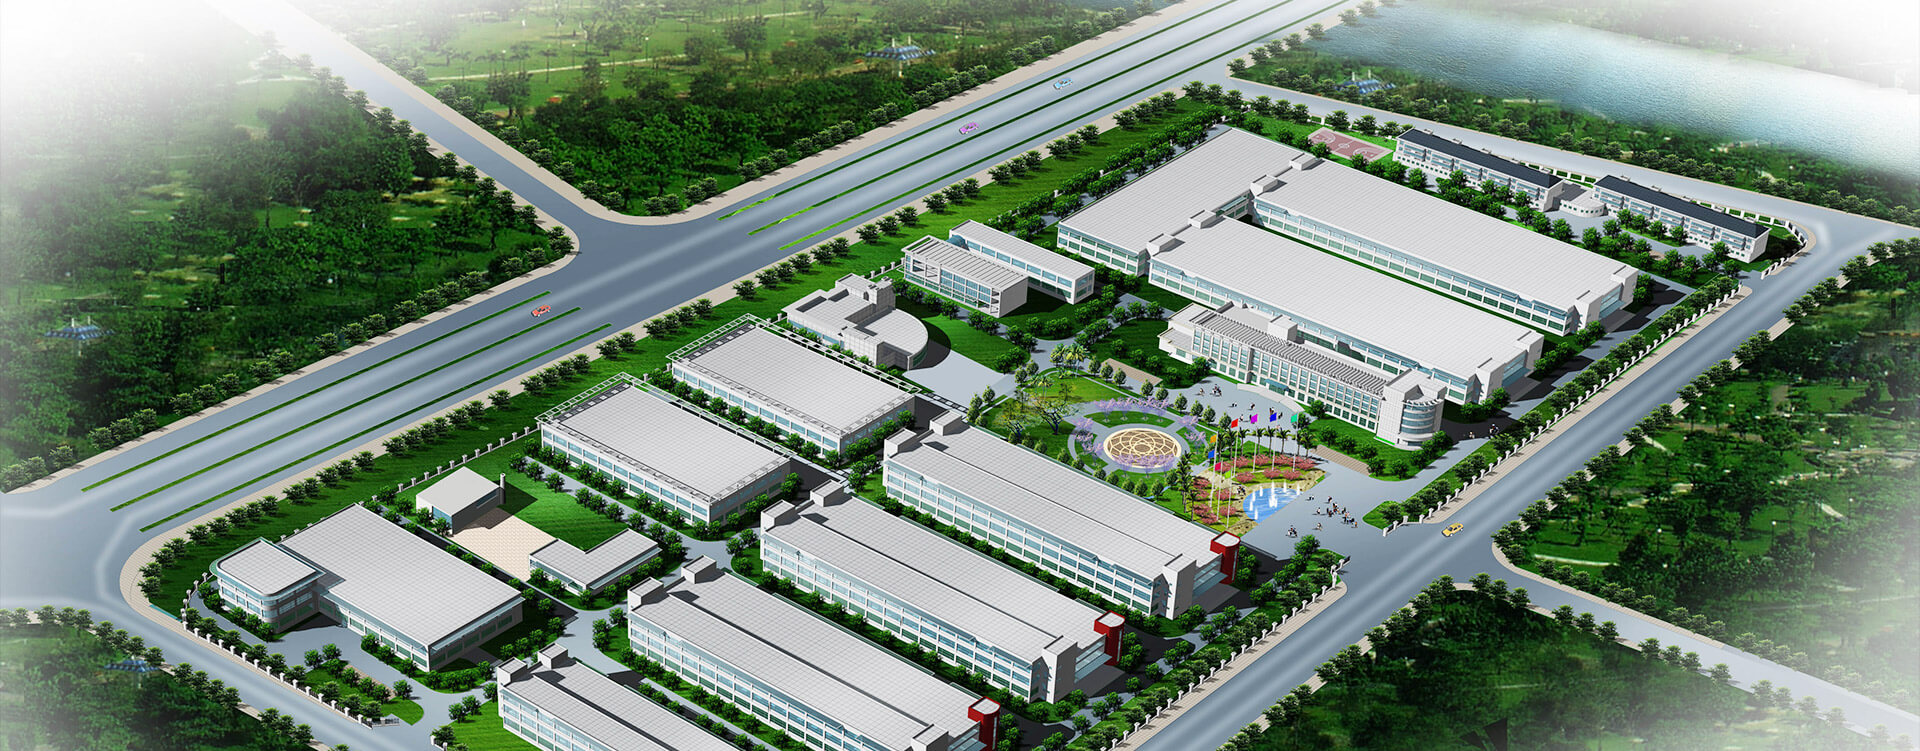 Zhejiang Lvhe Ecological Technology Co., Ltd.